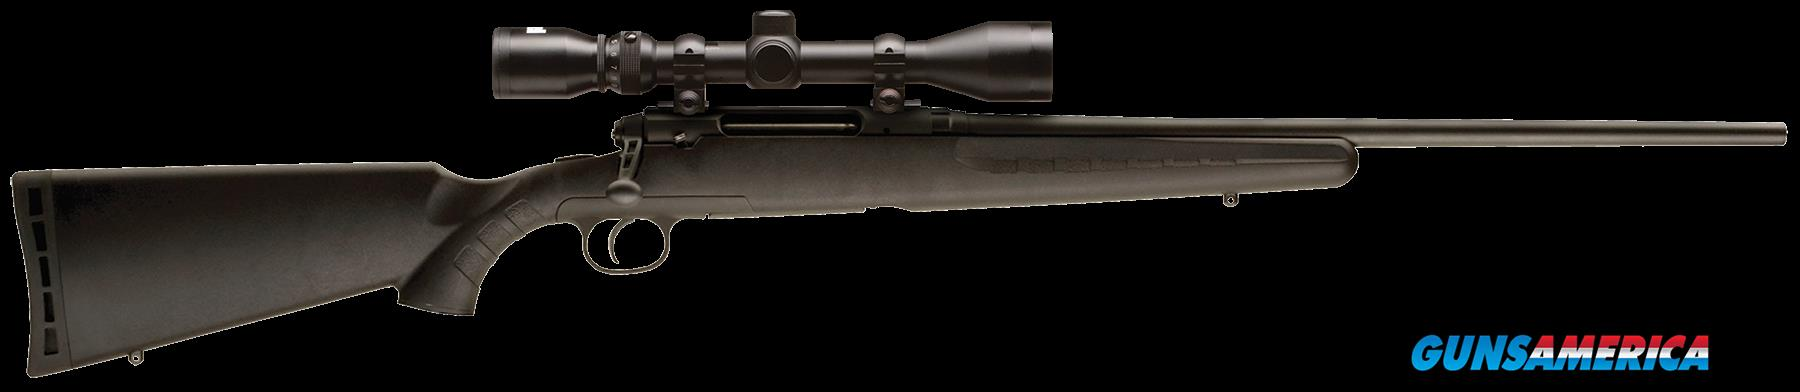 "Savage 19233 Axis XP with Scope Bolt 270 Winchester 22"" 4+1 Synthetic Black Stk Blued  Guns > Rifles > S Misc Rifles"